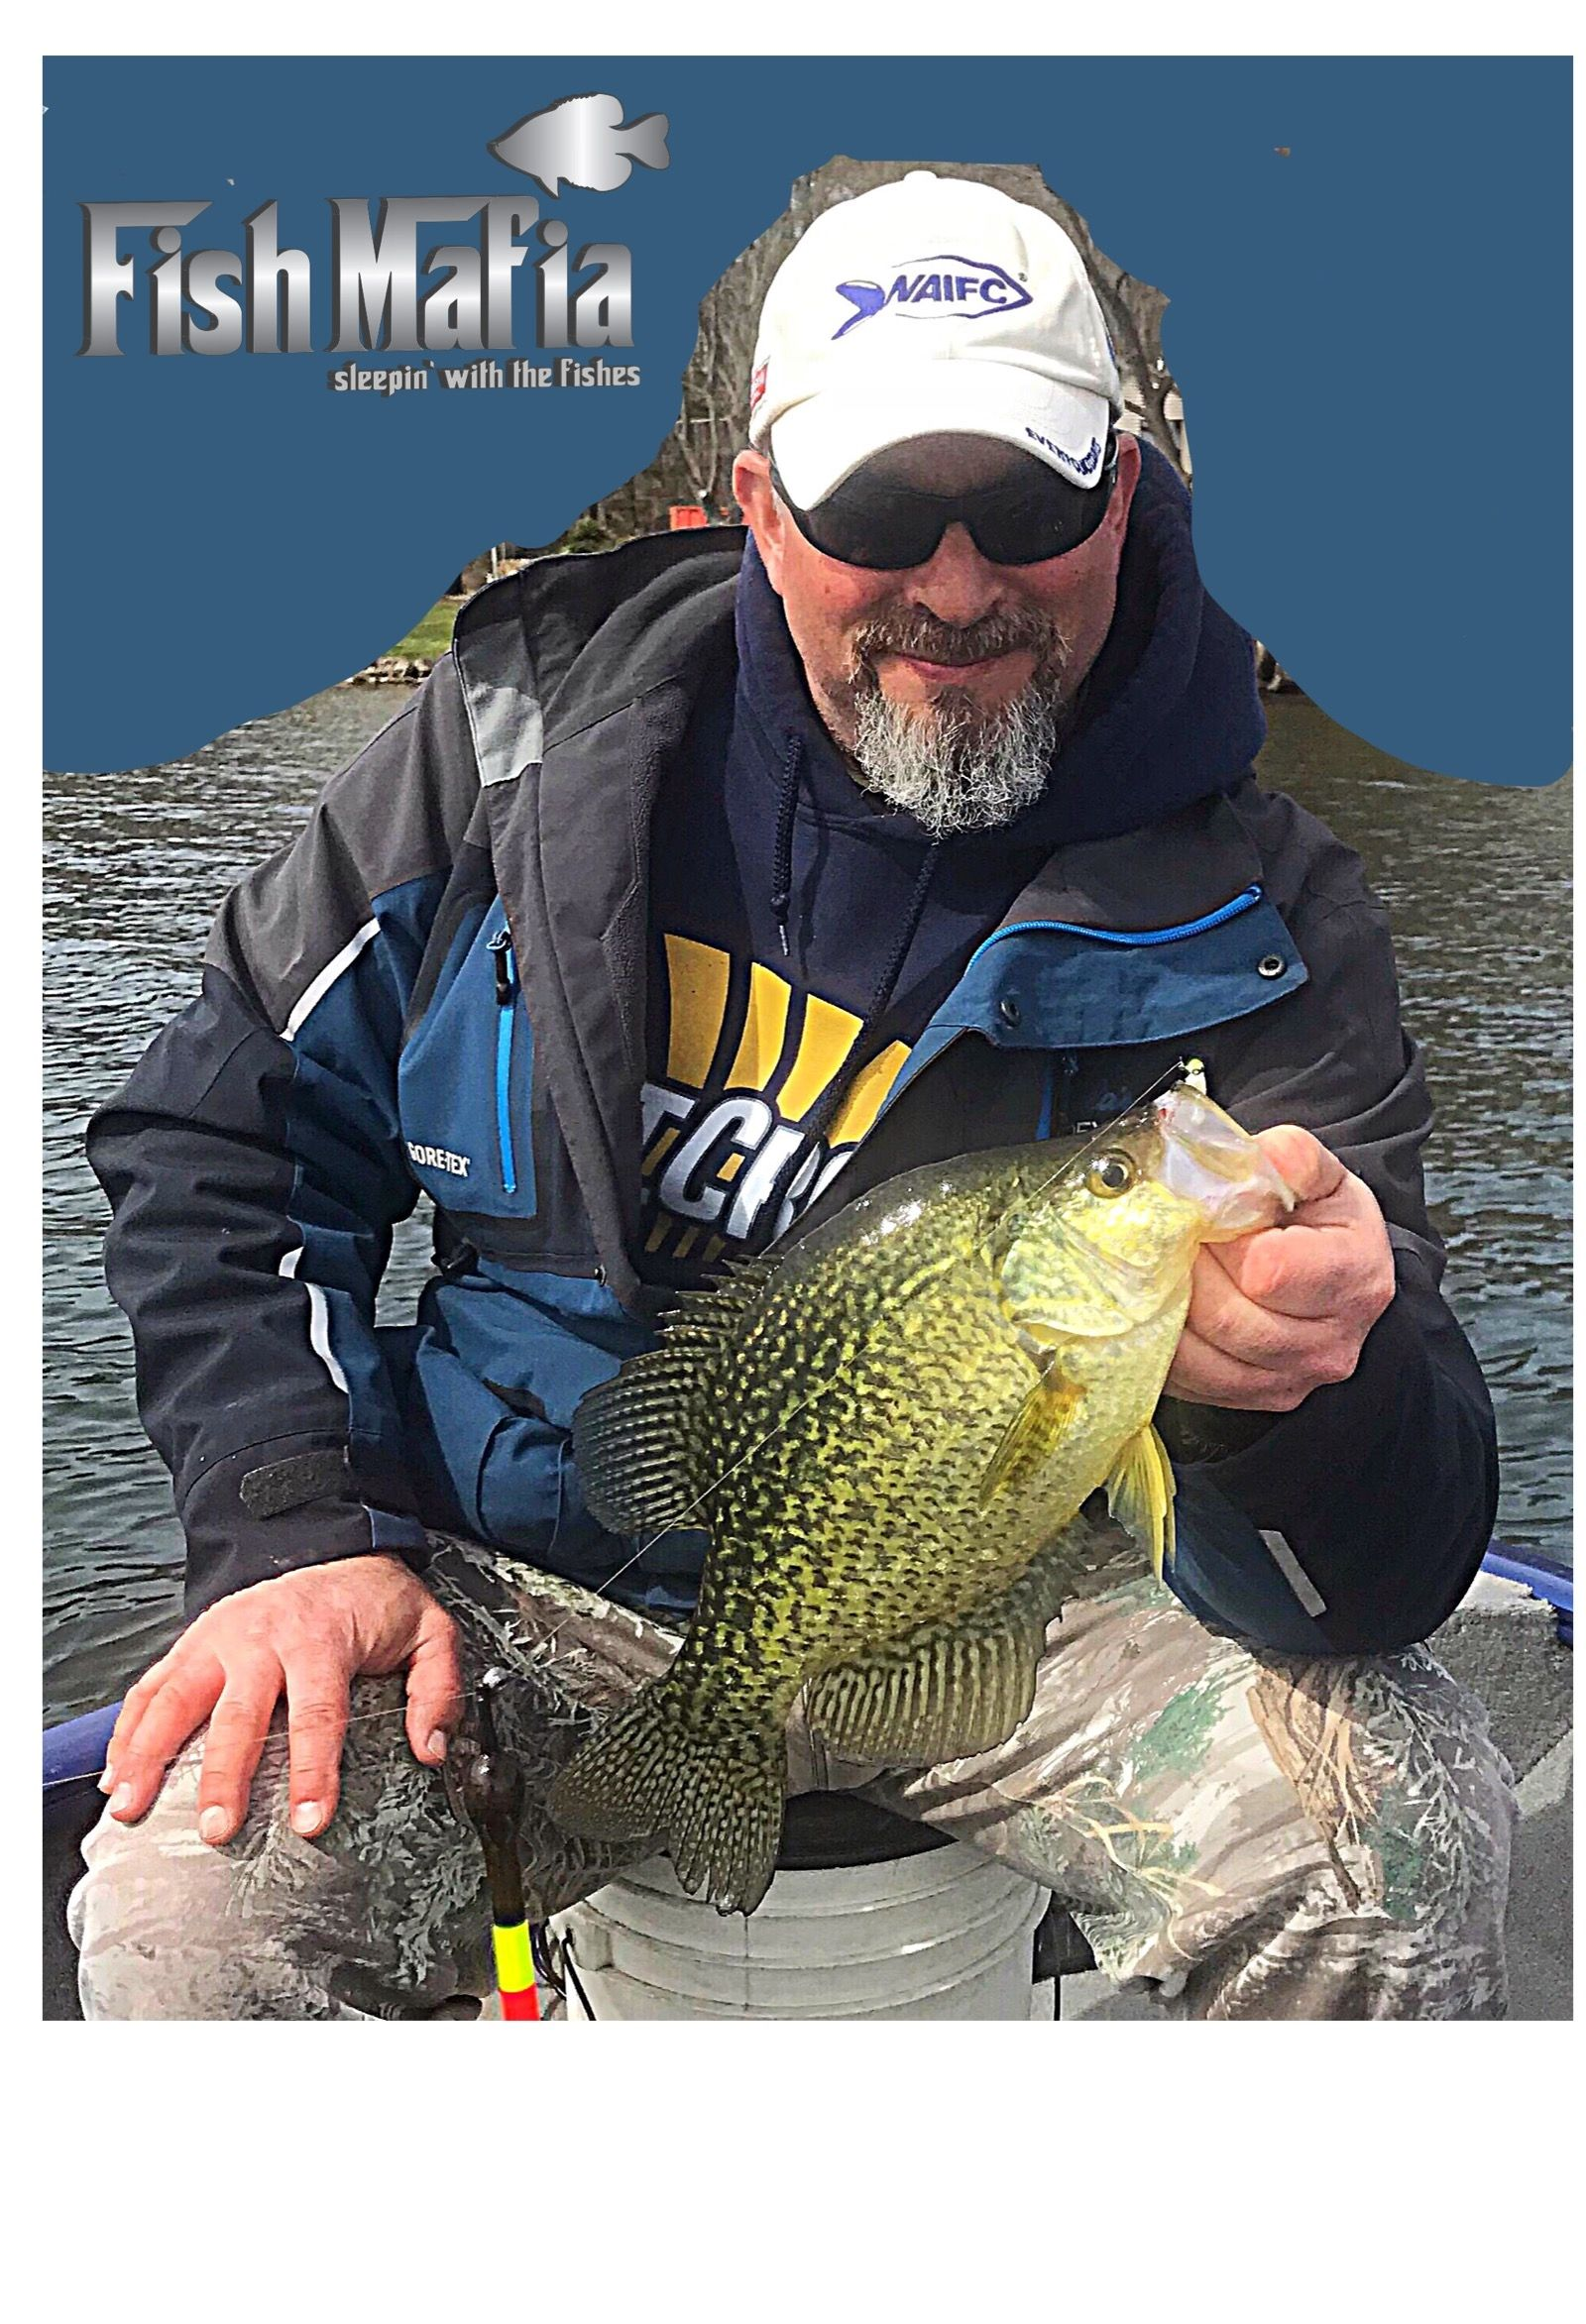 Joh Battastella of Cheektowaga caught some beautiful Crappies Saturday on Chautauqua Lake. He reports that there are a few tremendous year classes of fish showing up this year, with many Black Crappies in the 12-14 inch range. This is a 14-inch slab that went 1.75 lbs.  She fell prey to a very slow methodical jigging cadence with small finesse plastics, as the fish were there but due to painfully calm conditions along with clear waters they needed to be coaxed into hitting. He ended up using Maki Plastics on small tungsten jigs to get the fish to commit.